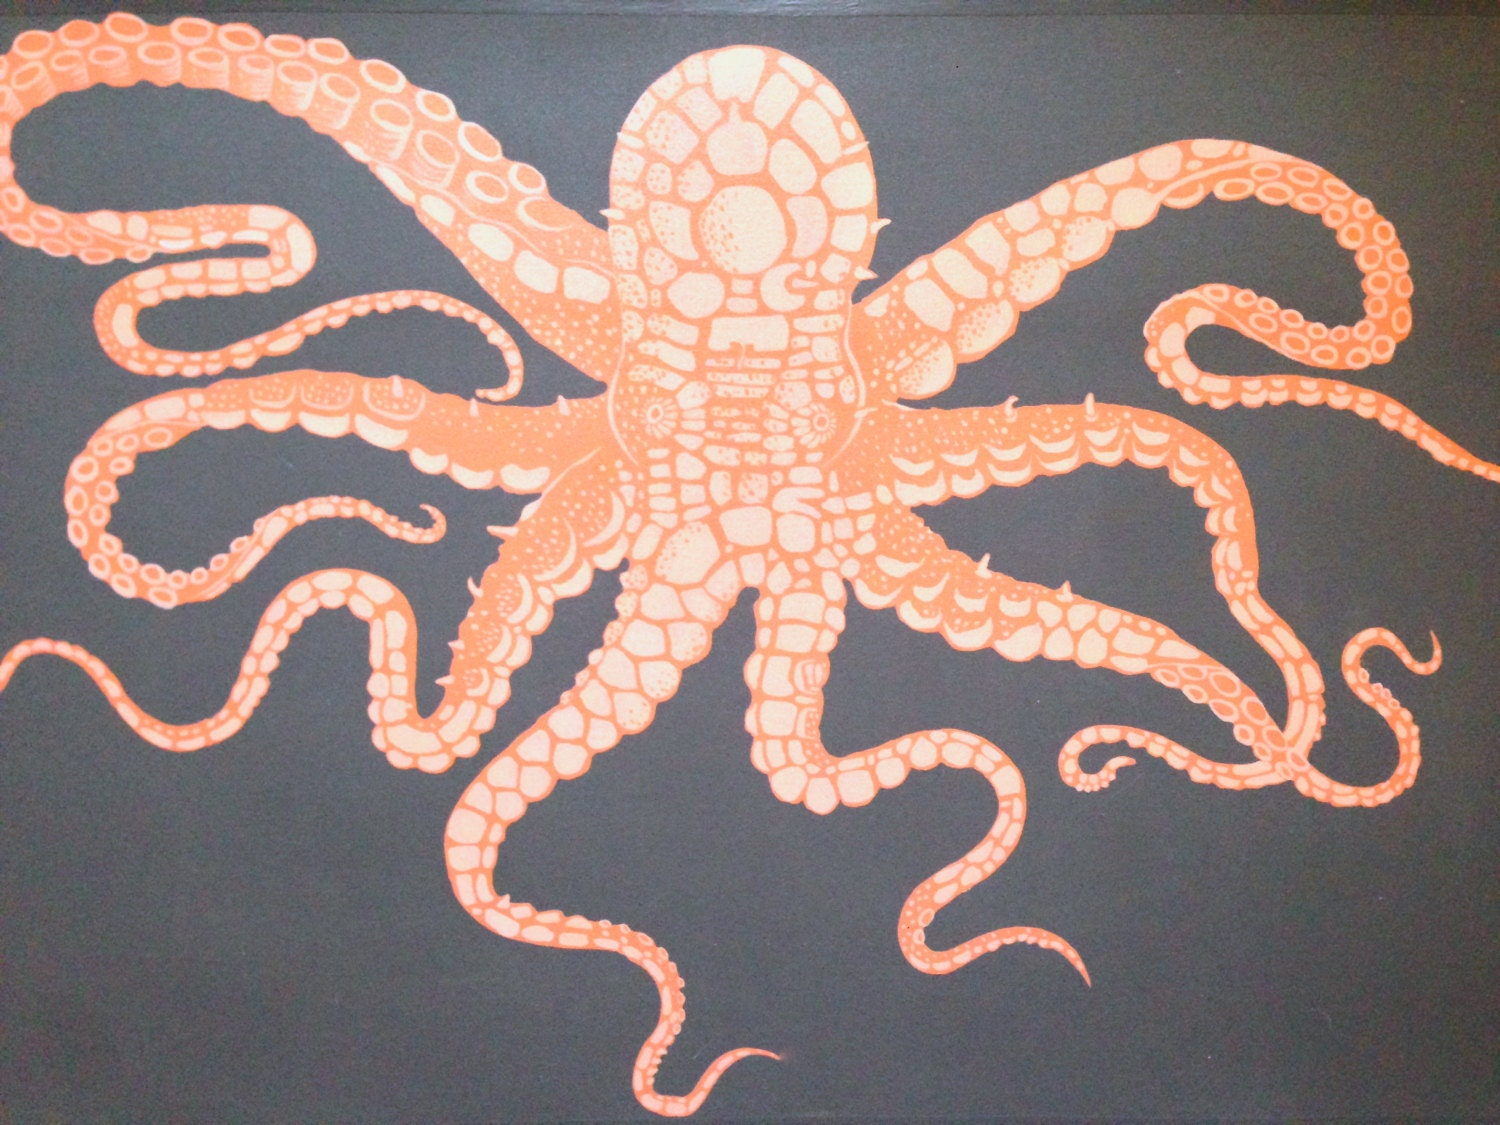 octopus rug  roselawnlutheran - hand painted octopus floor cloth orange grey rug mat art for the floorbeach house decor